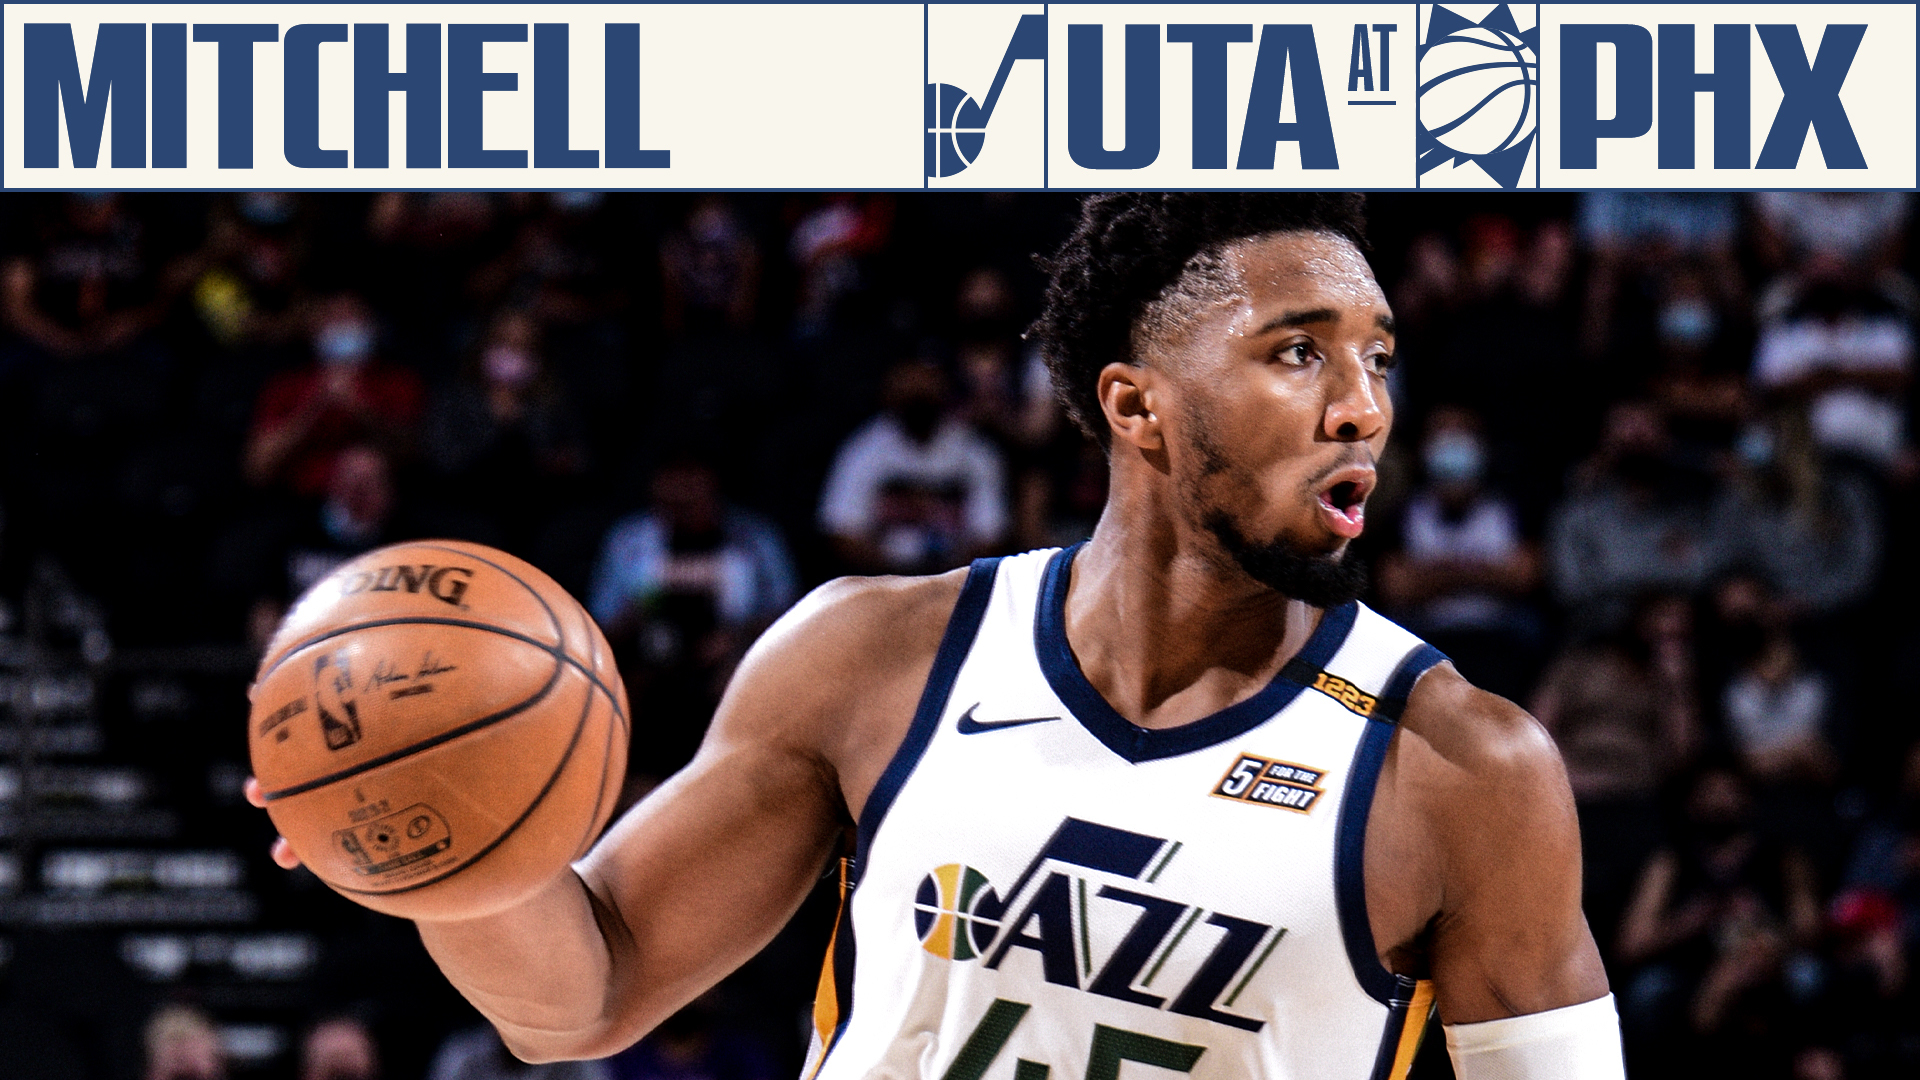 Highlights: Donovan Mitchell — 41 points, 8 rebounds